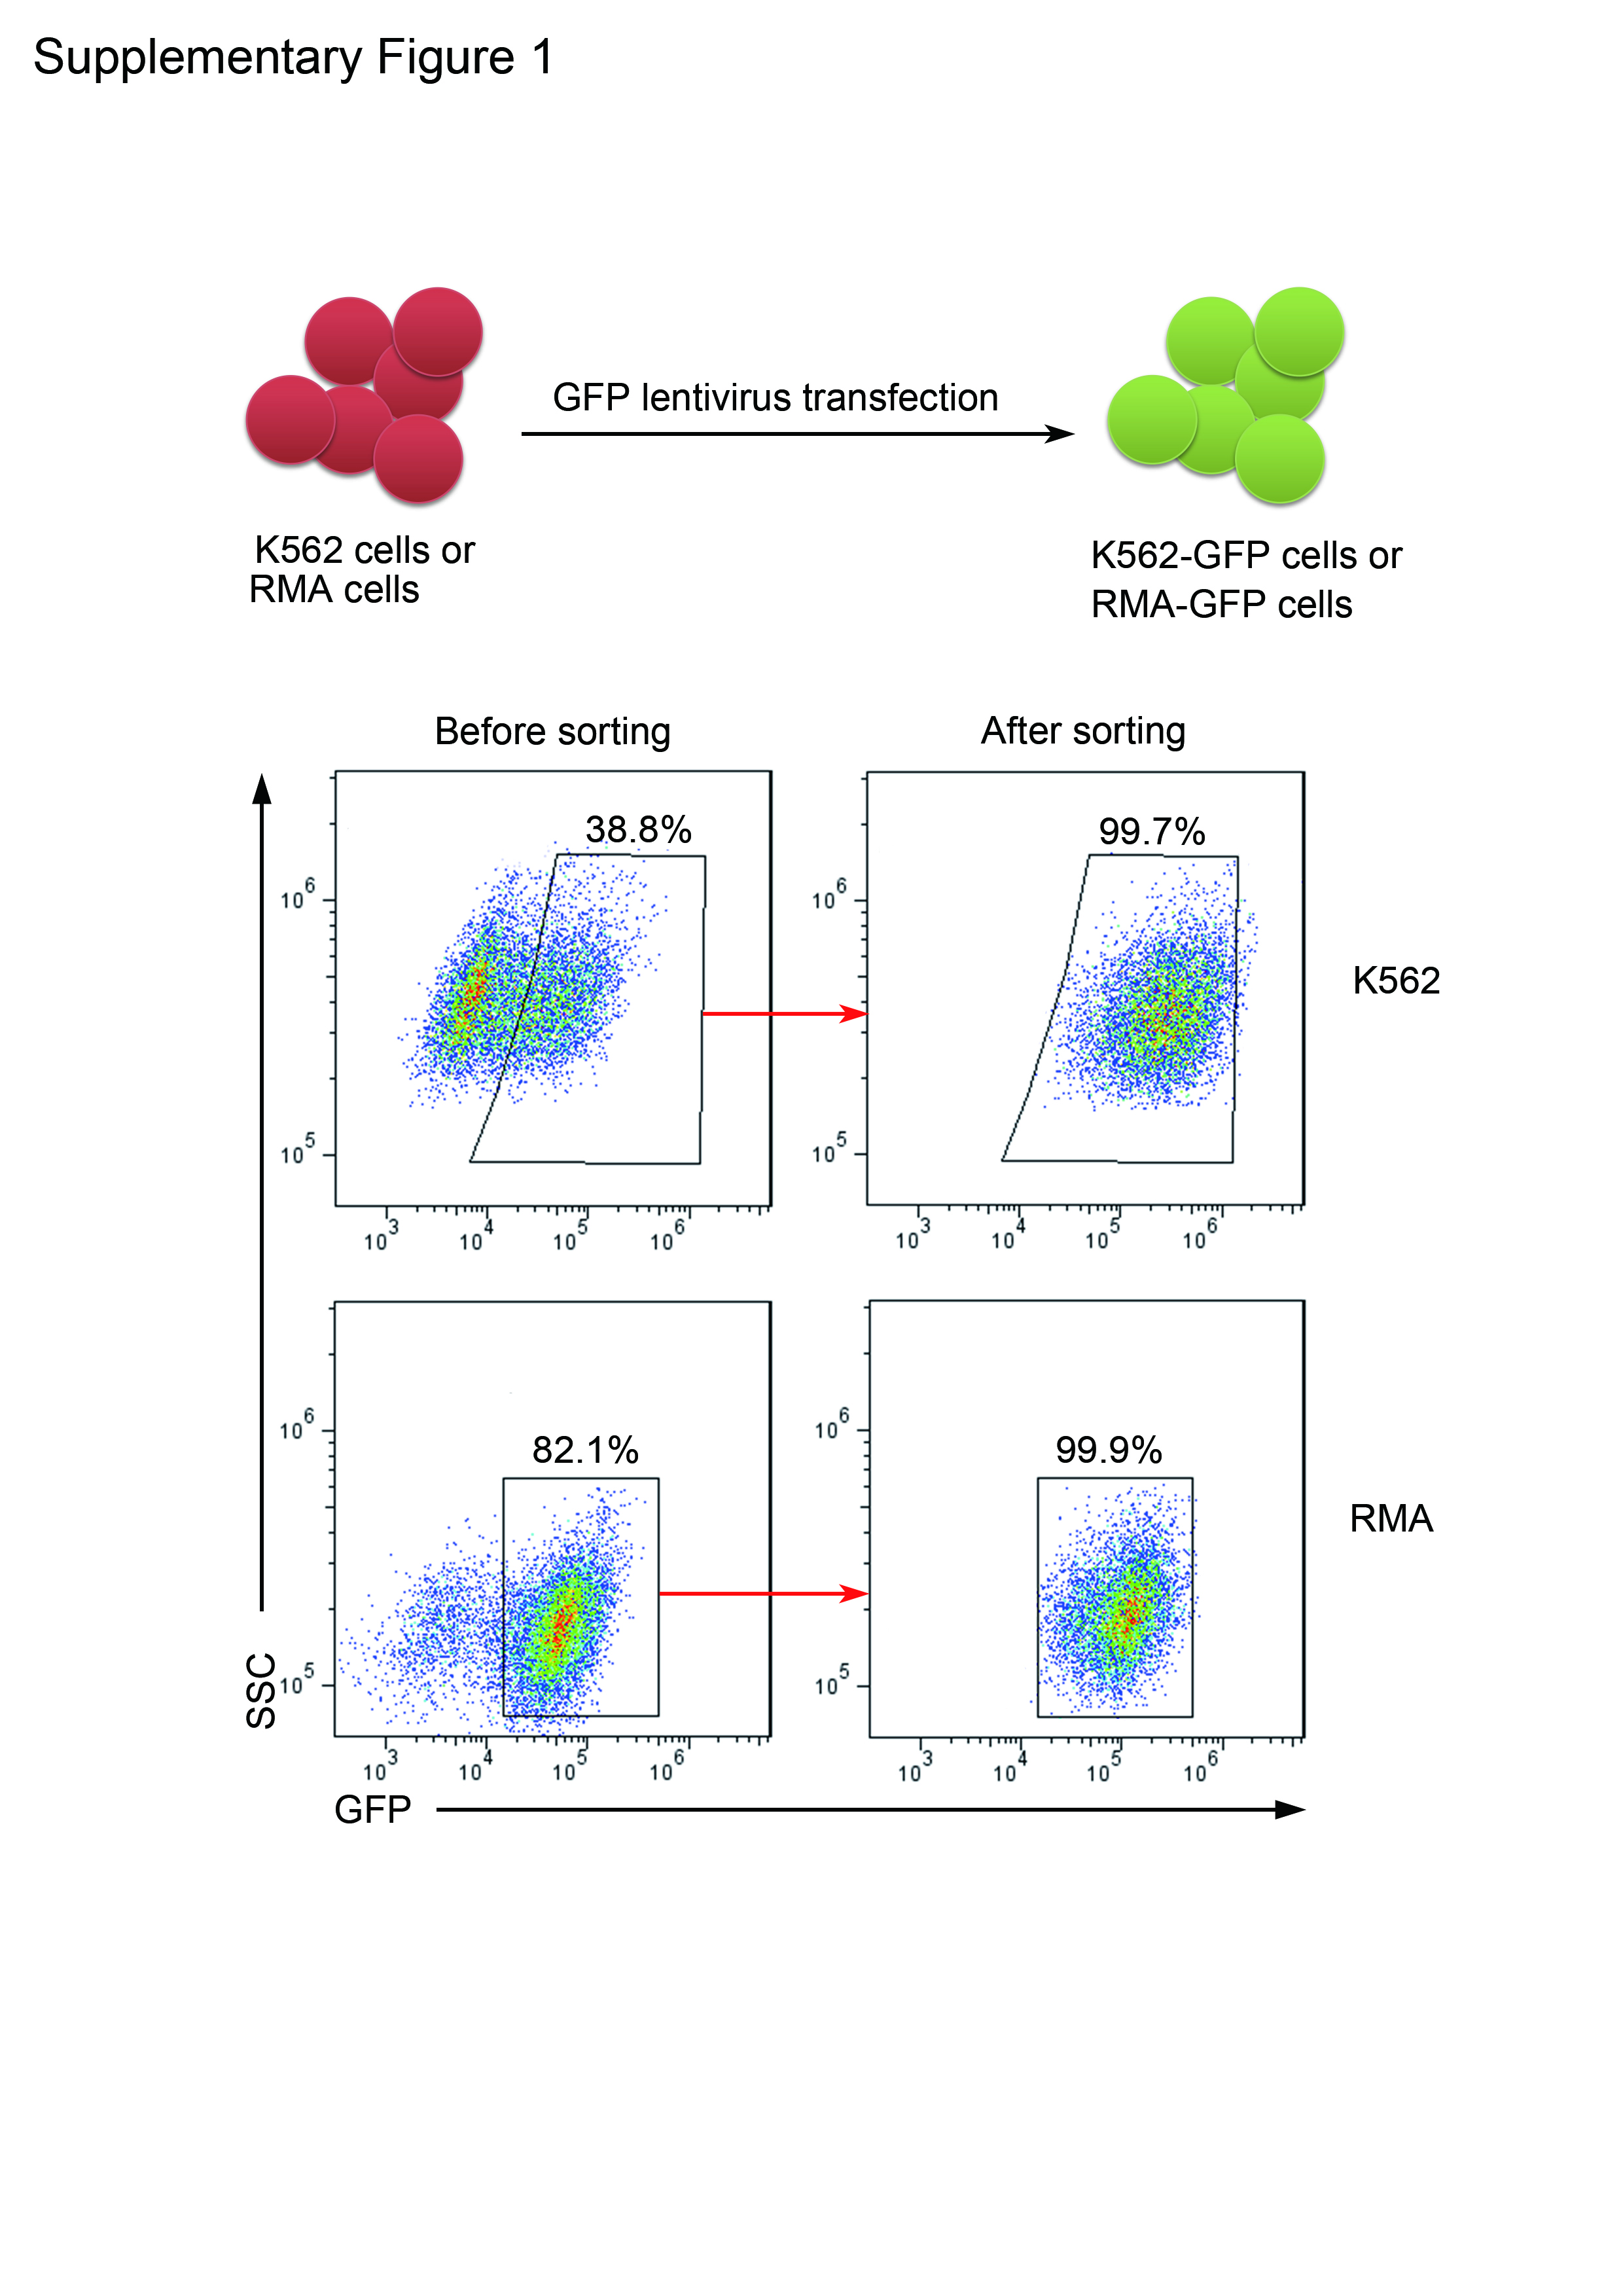 Quantitative evaluation of the immunodeficiency of a mouse strain a flow chart of establishing k562 gfp and rma gfp cells that that constitutively expressed green fluorescent protein gfp geenschuldenfo Image collections